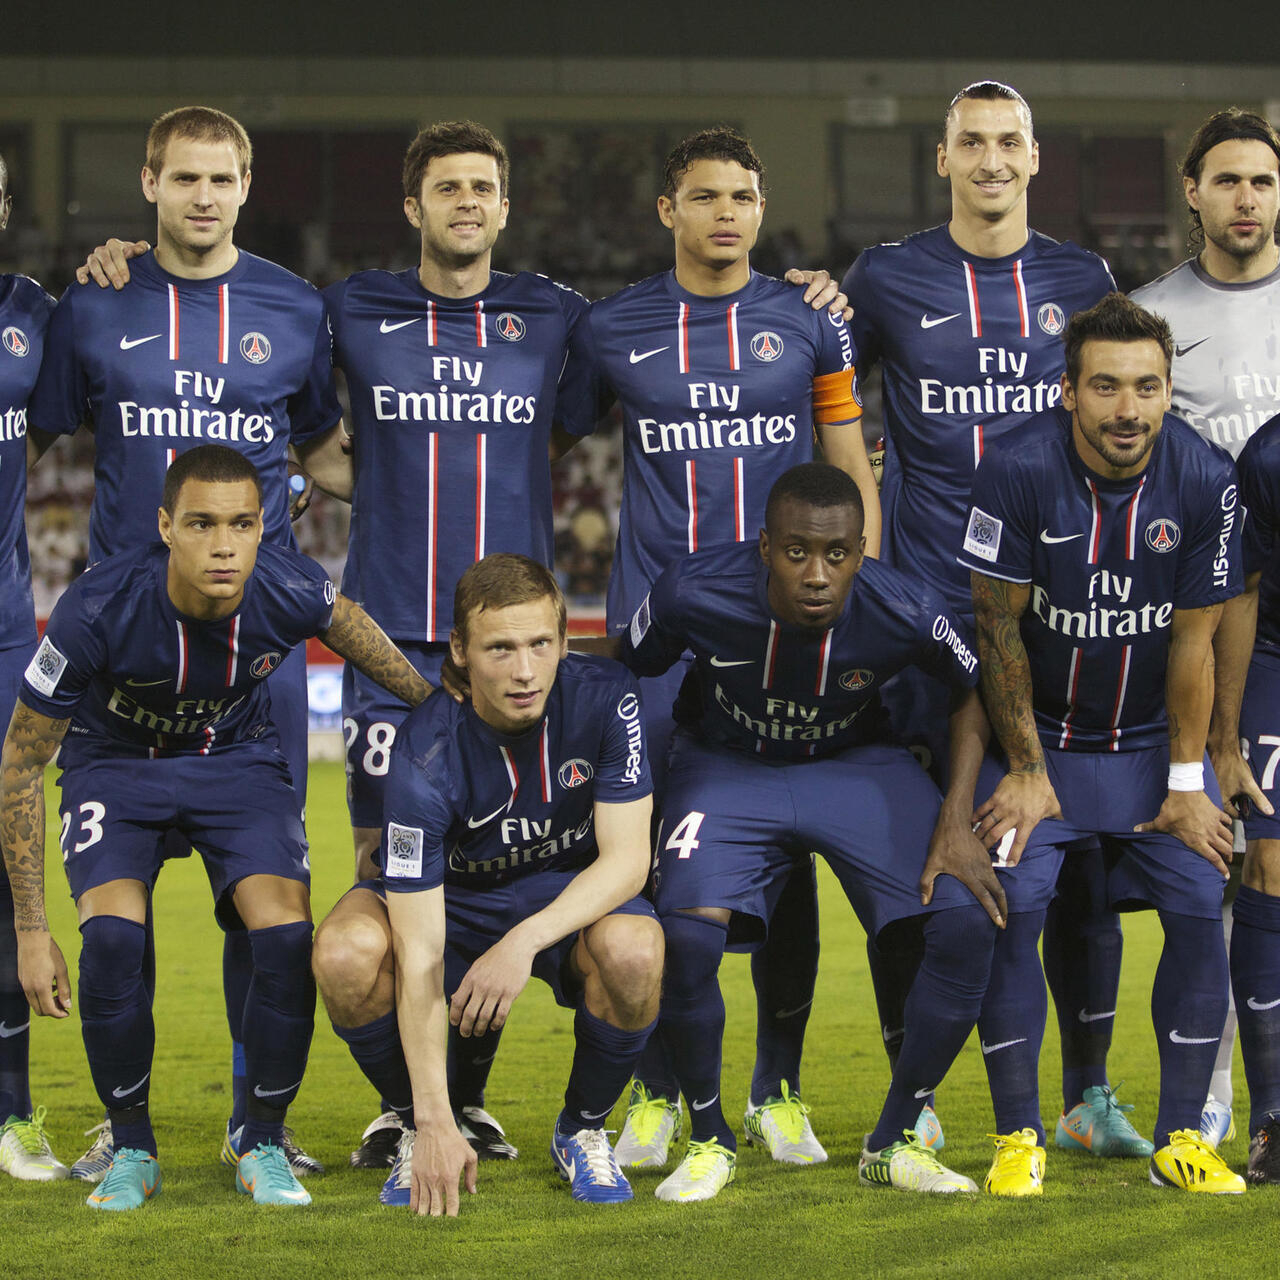 50 Years Of Psg A Look Back At The Rise Of France S Wealthiest Club